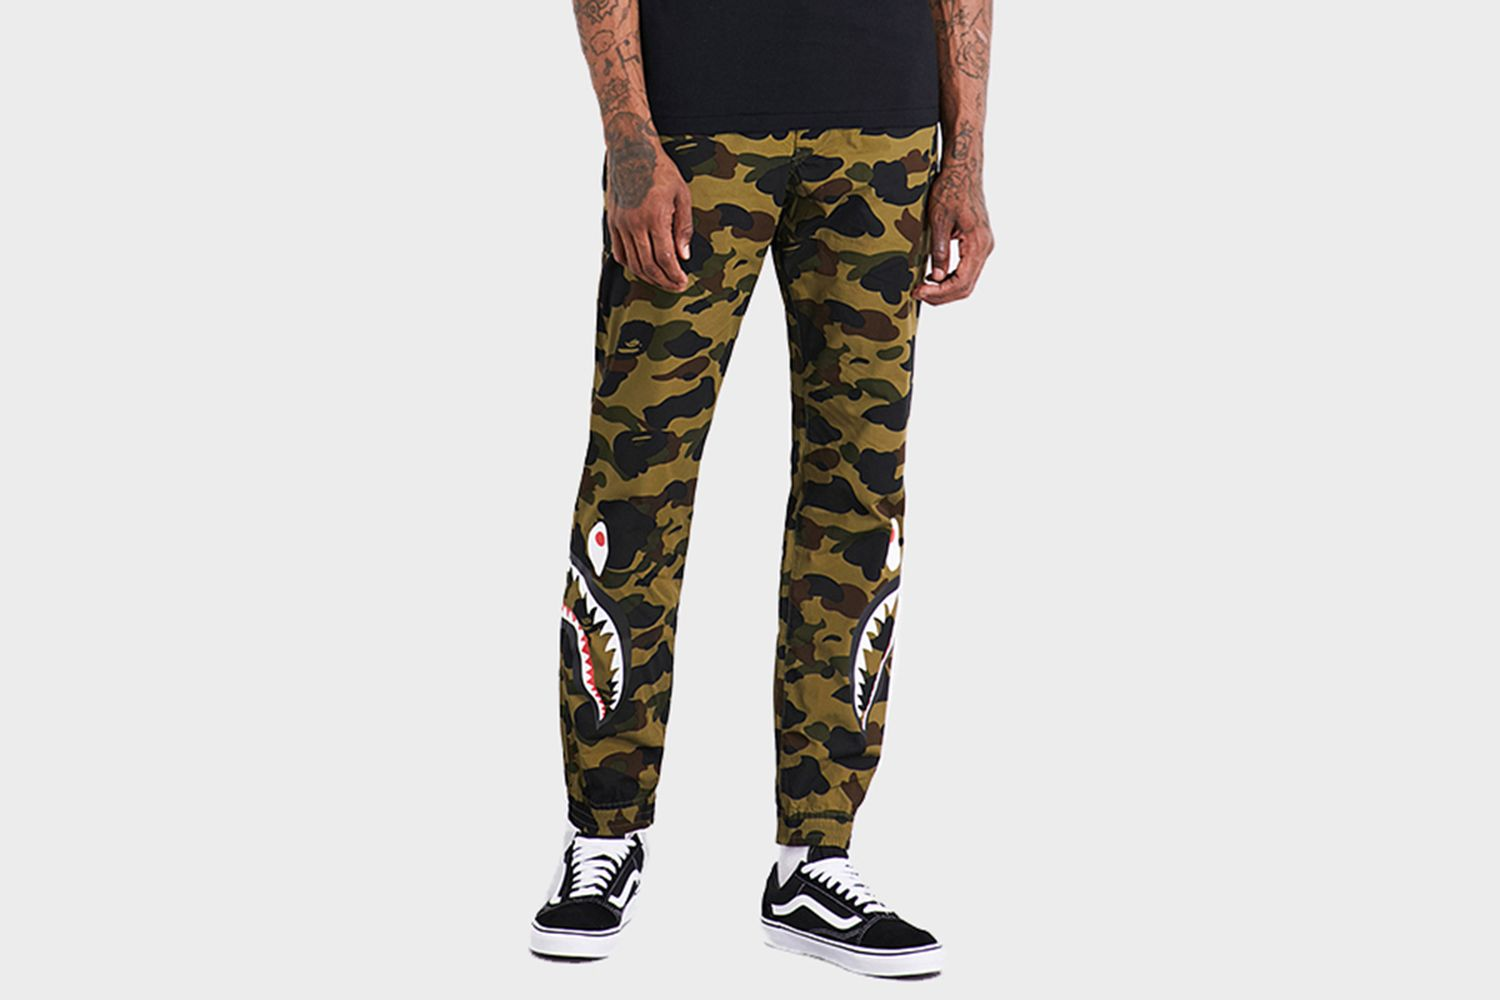 1st Camo Shark Print Cotton Pants